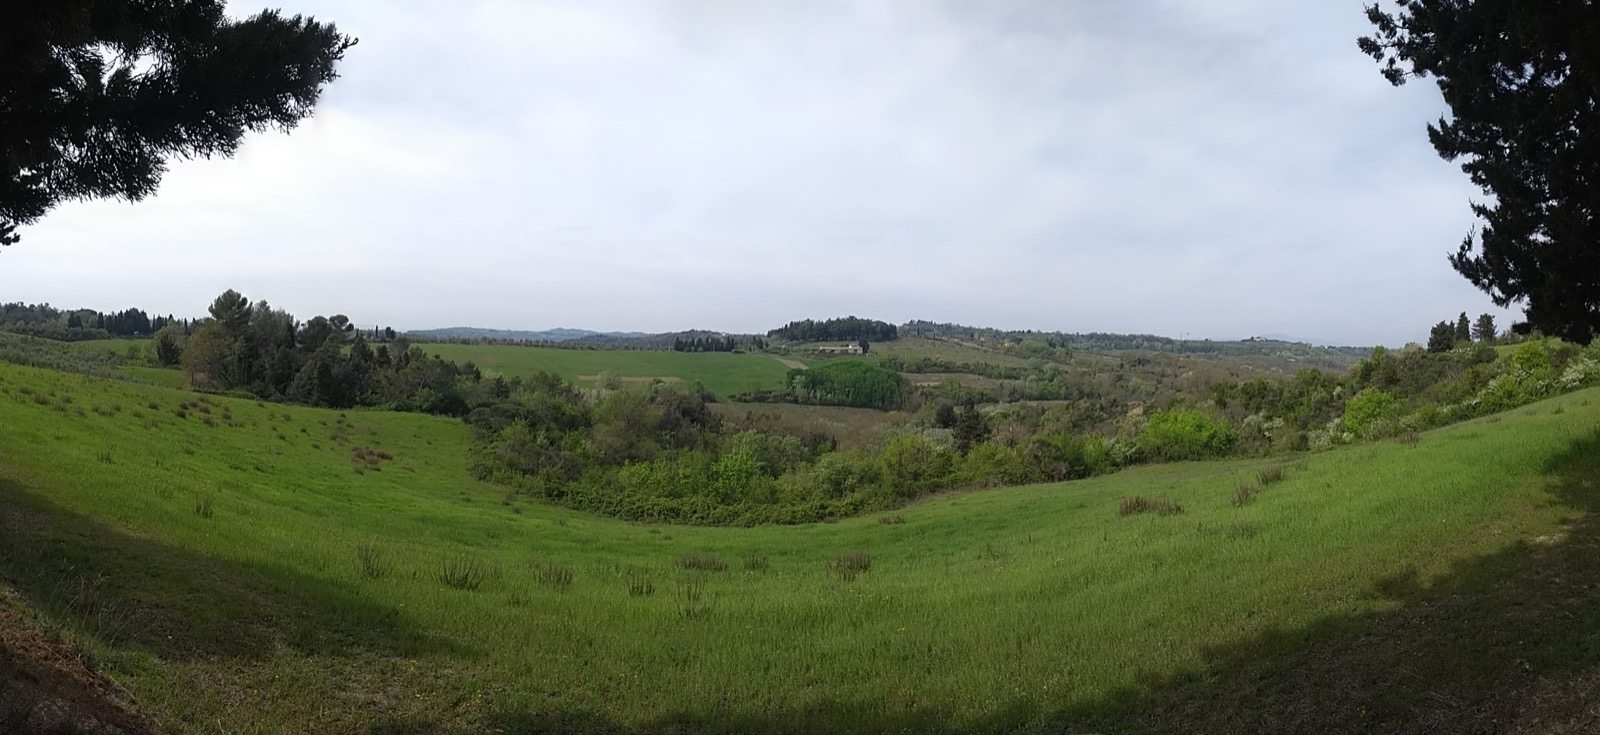 Panorama of Tuscan countryside - green fields and trees